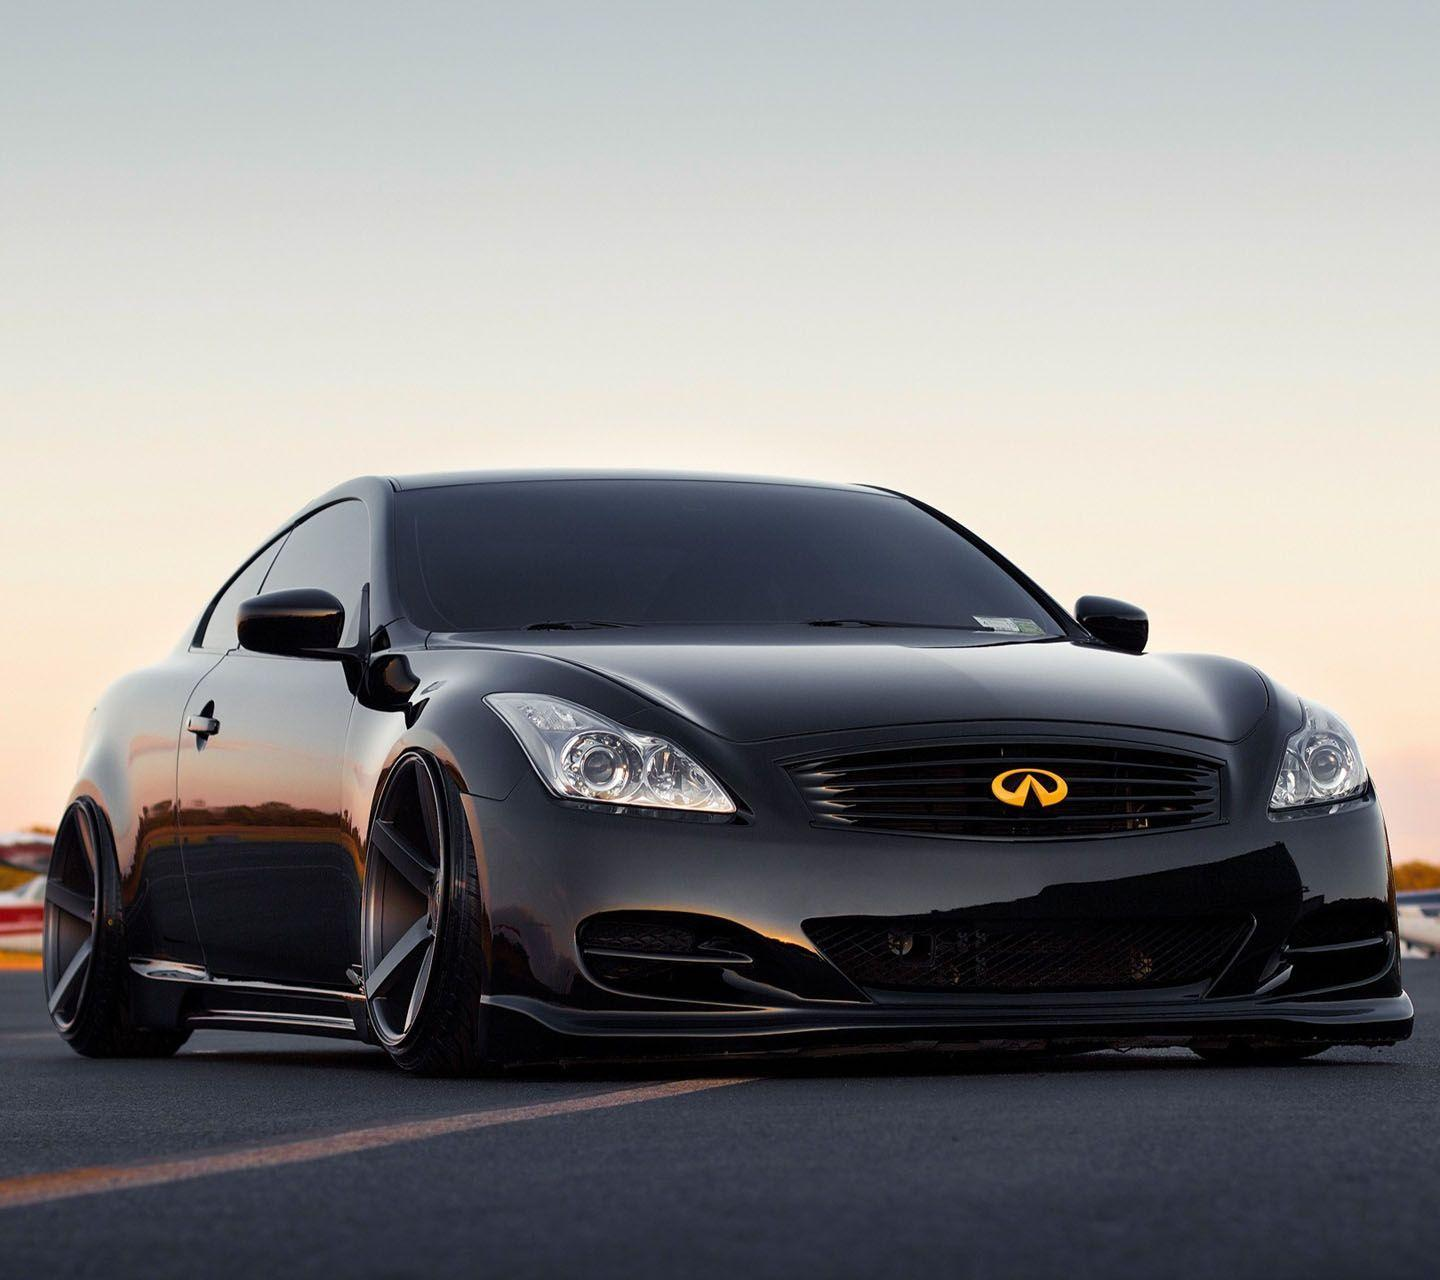 Infiniti G35 Wallpapers | HD Wallpapers Base